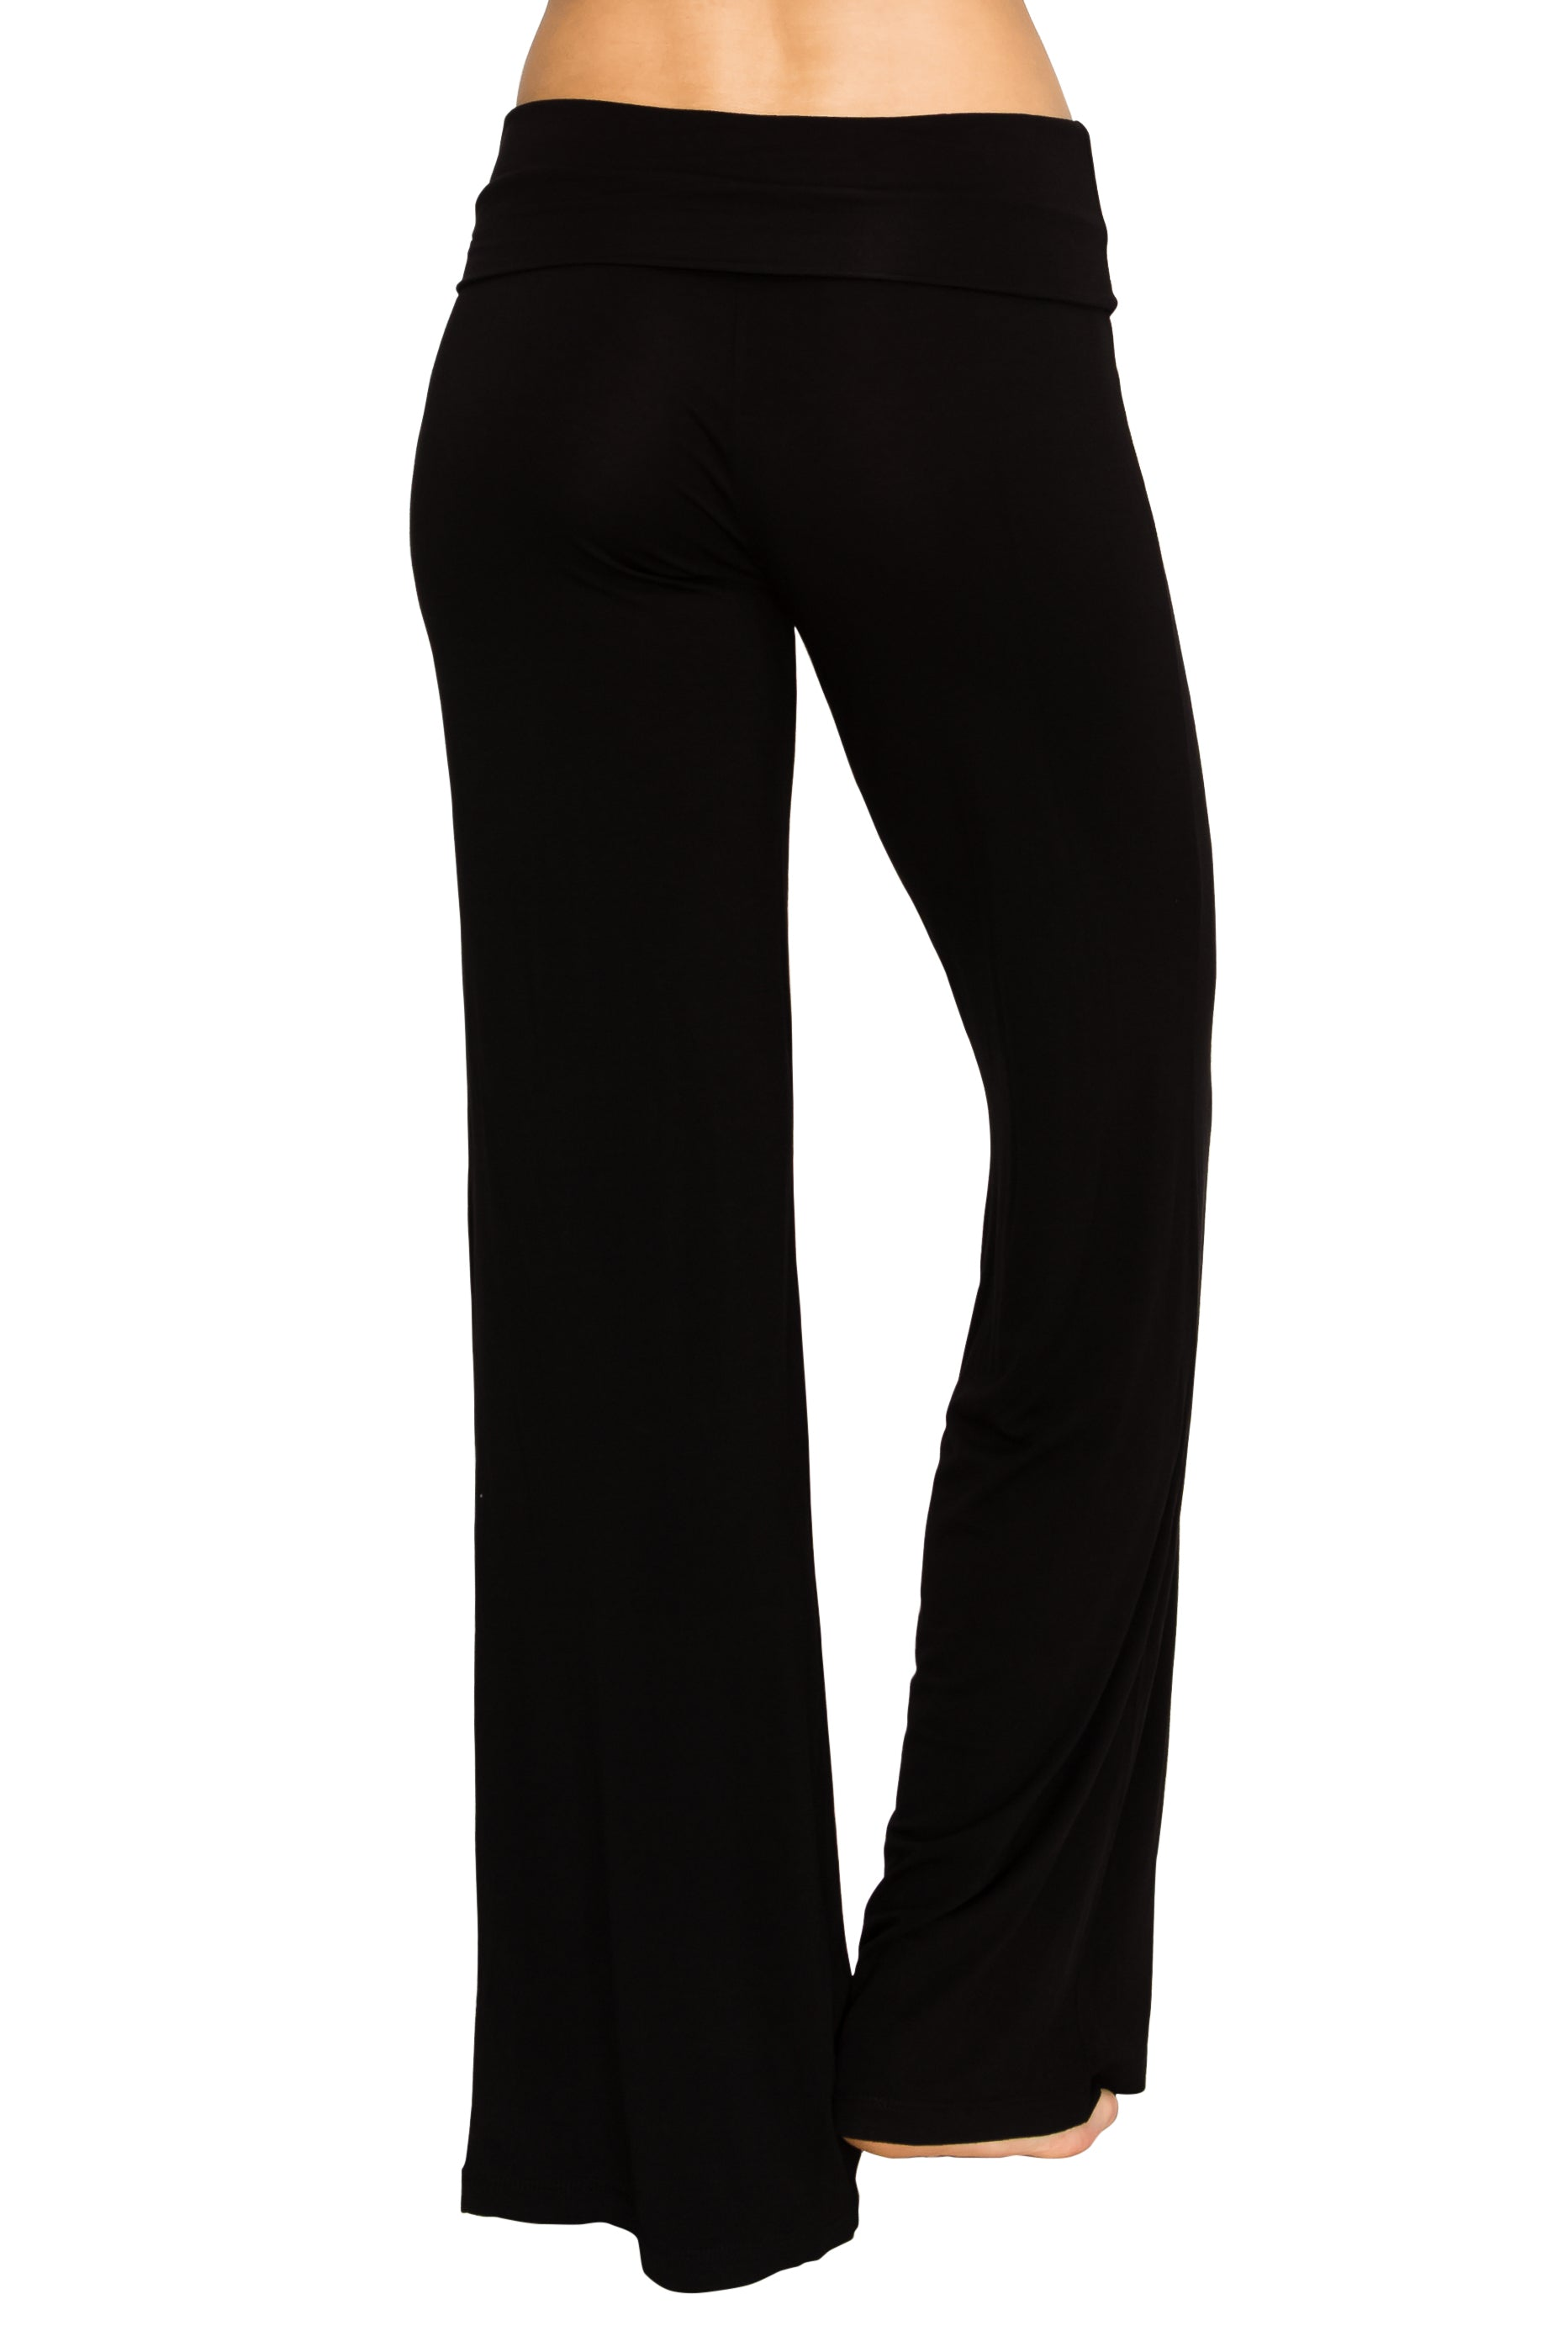 Black Foldover Yoga Pants - Poplooks